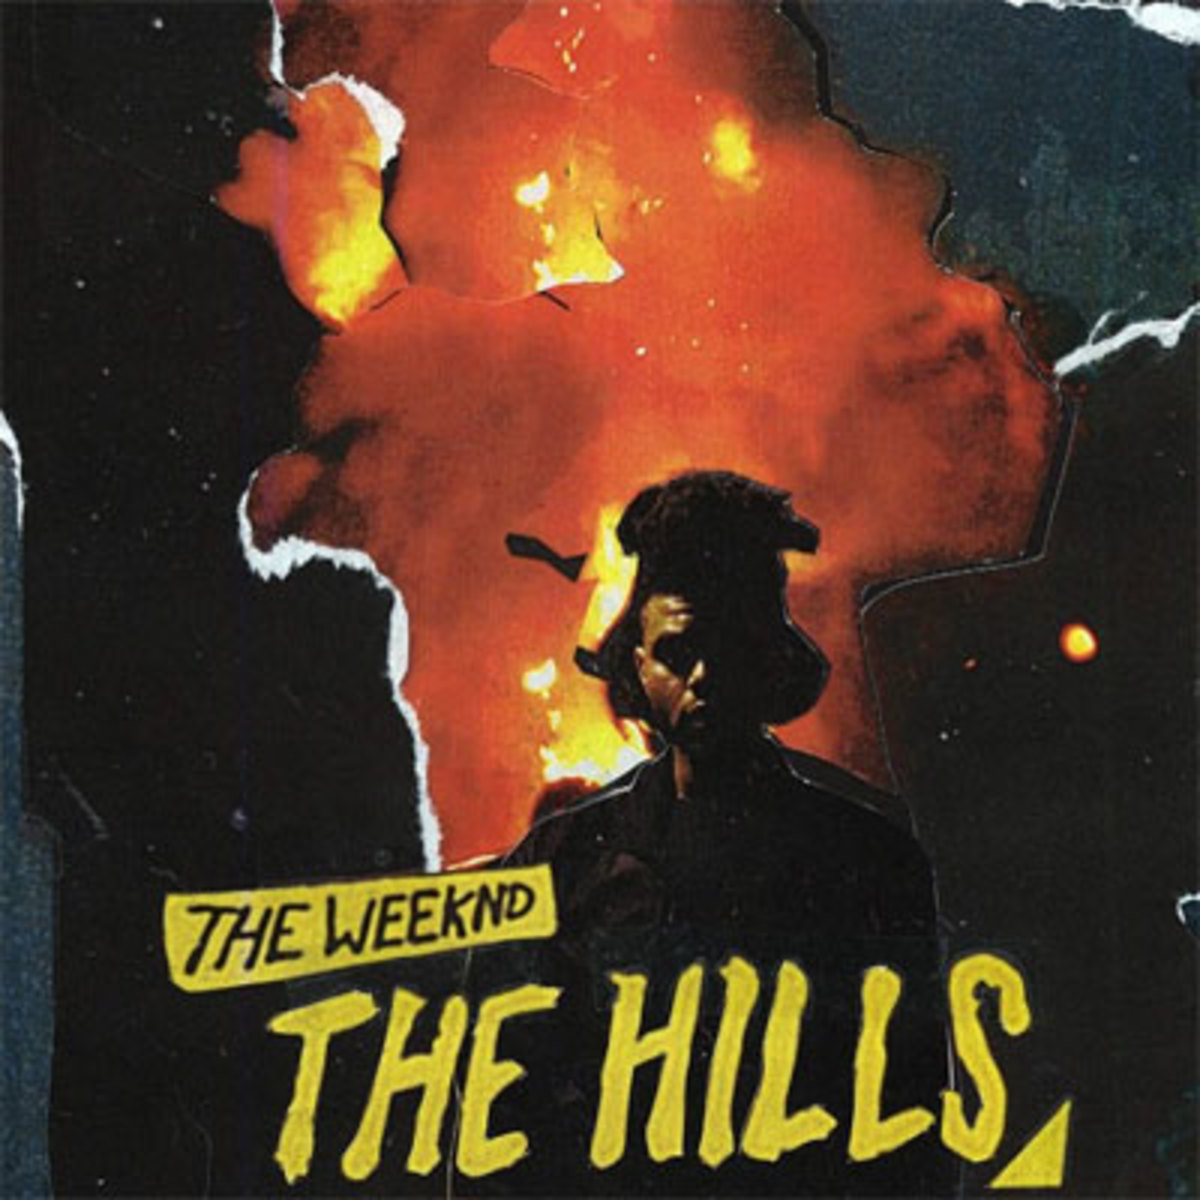 the-weeknd-the-hills.jpg